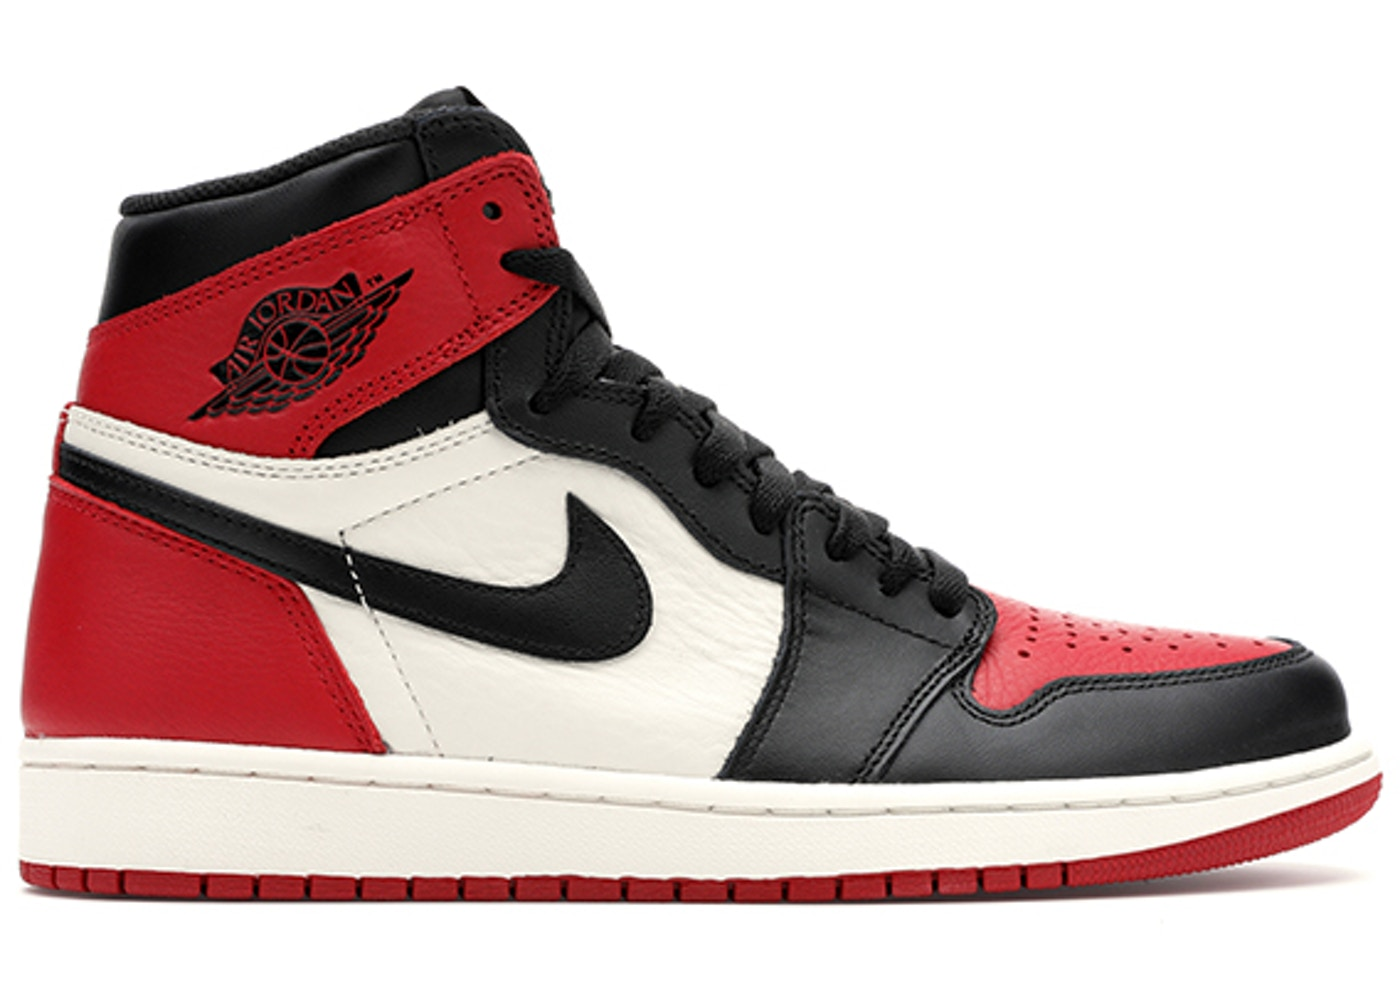 promo code 30226 9bc93 Buy Air Jordan 1 Shoes  Deadstock Sneakers